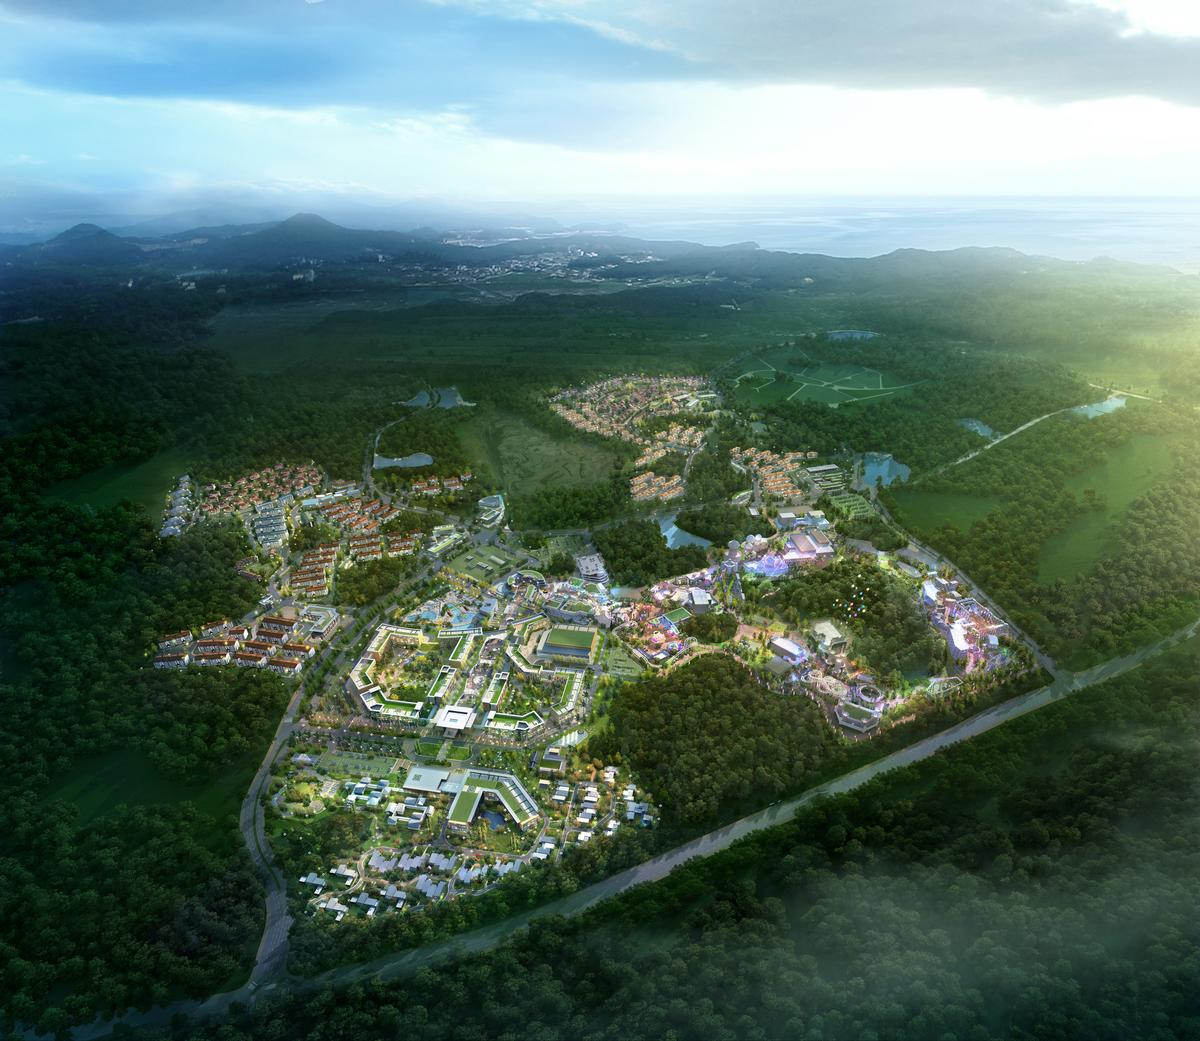 Resorts World Jeju is scheduled to open in 2017